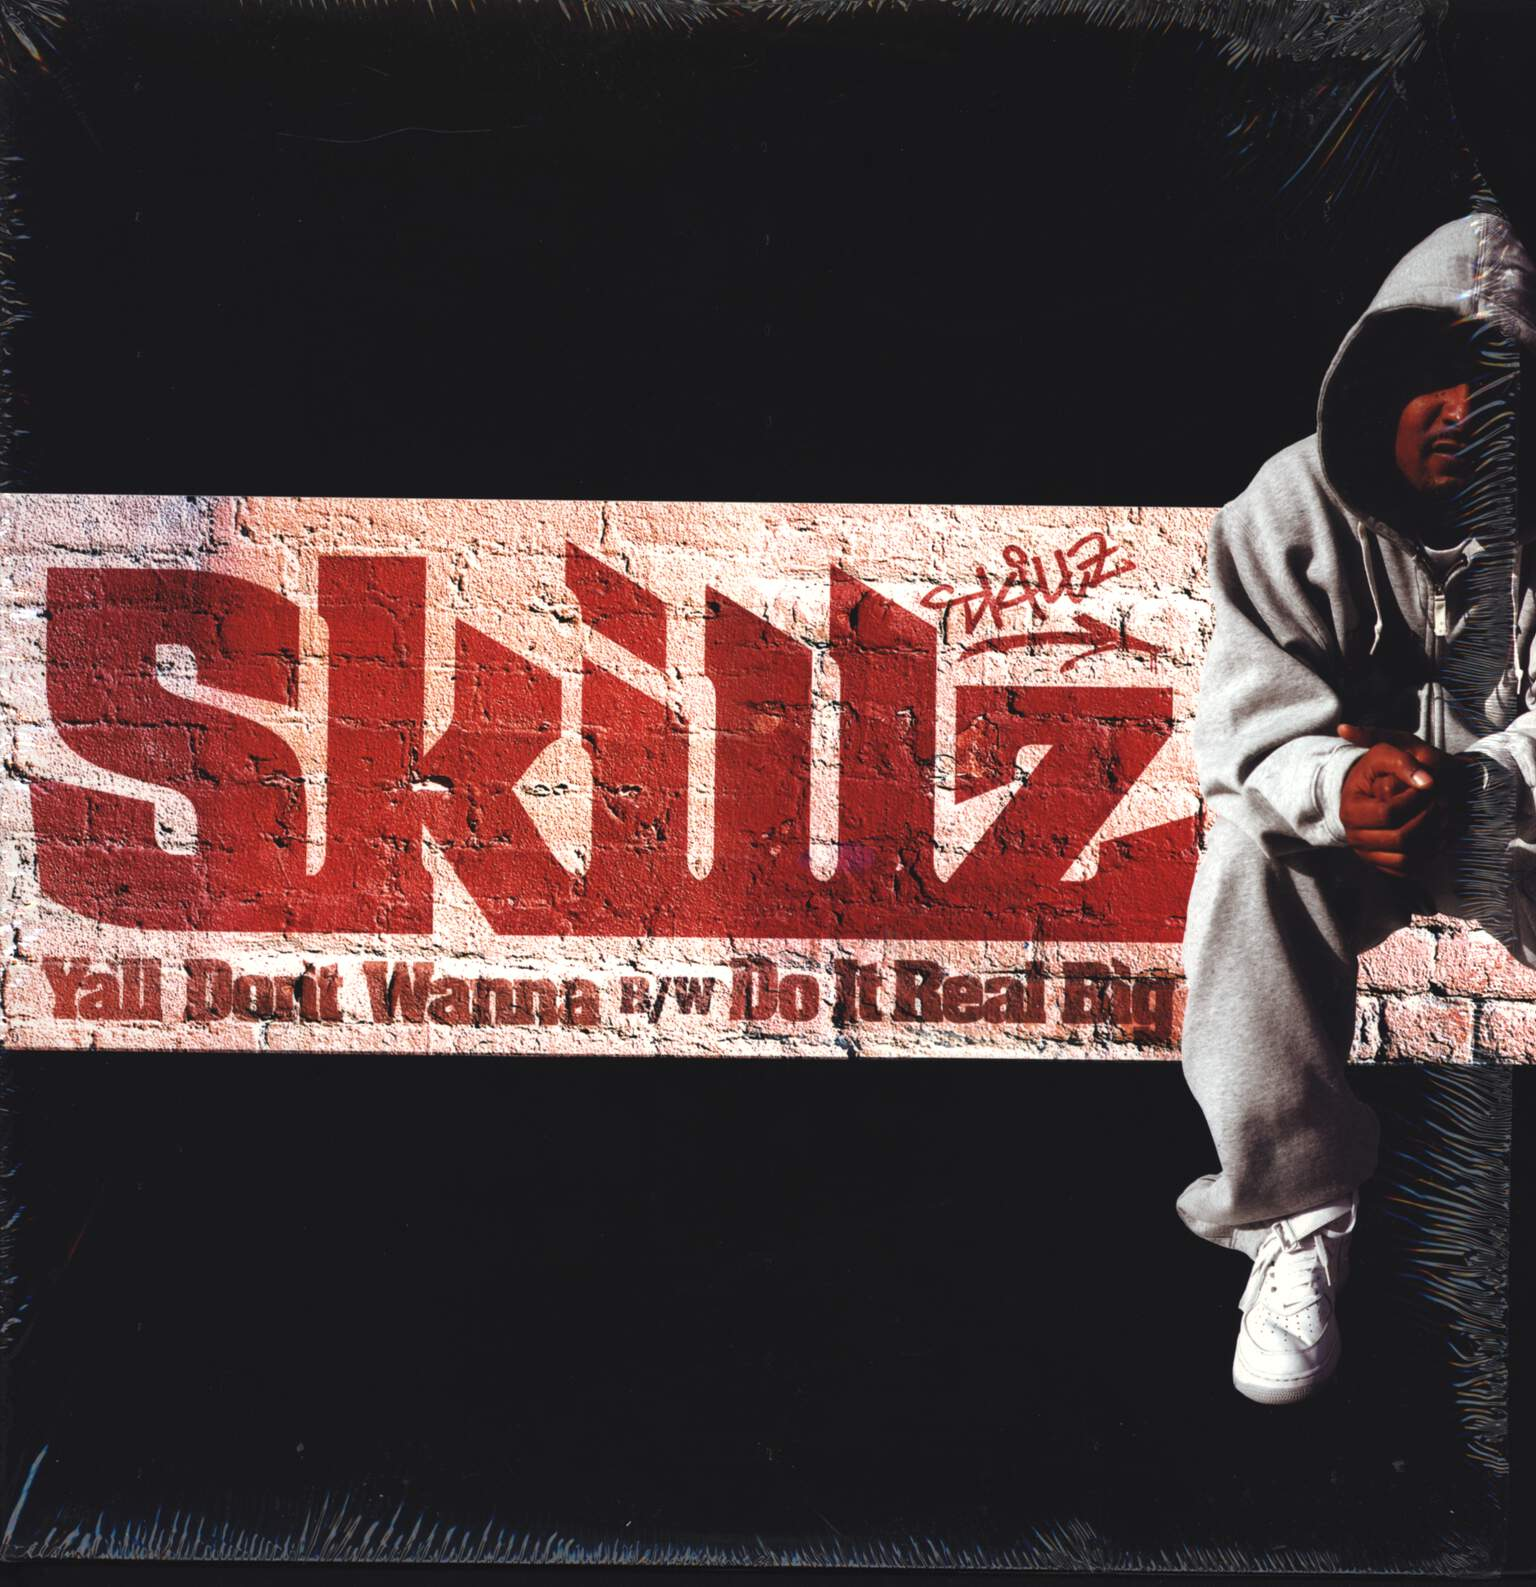 "Skillz: Ya'll Don't Wanna / Do It Real Big, 12"" Maxi Single (Vinyl)"